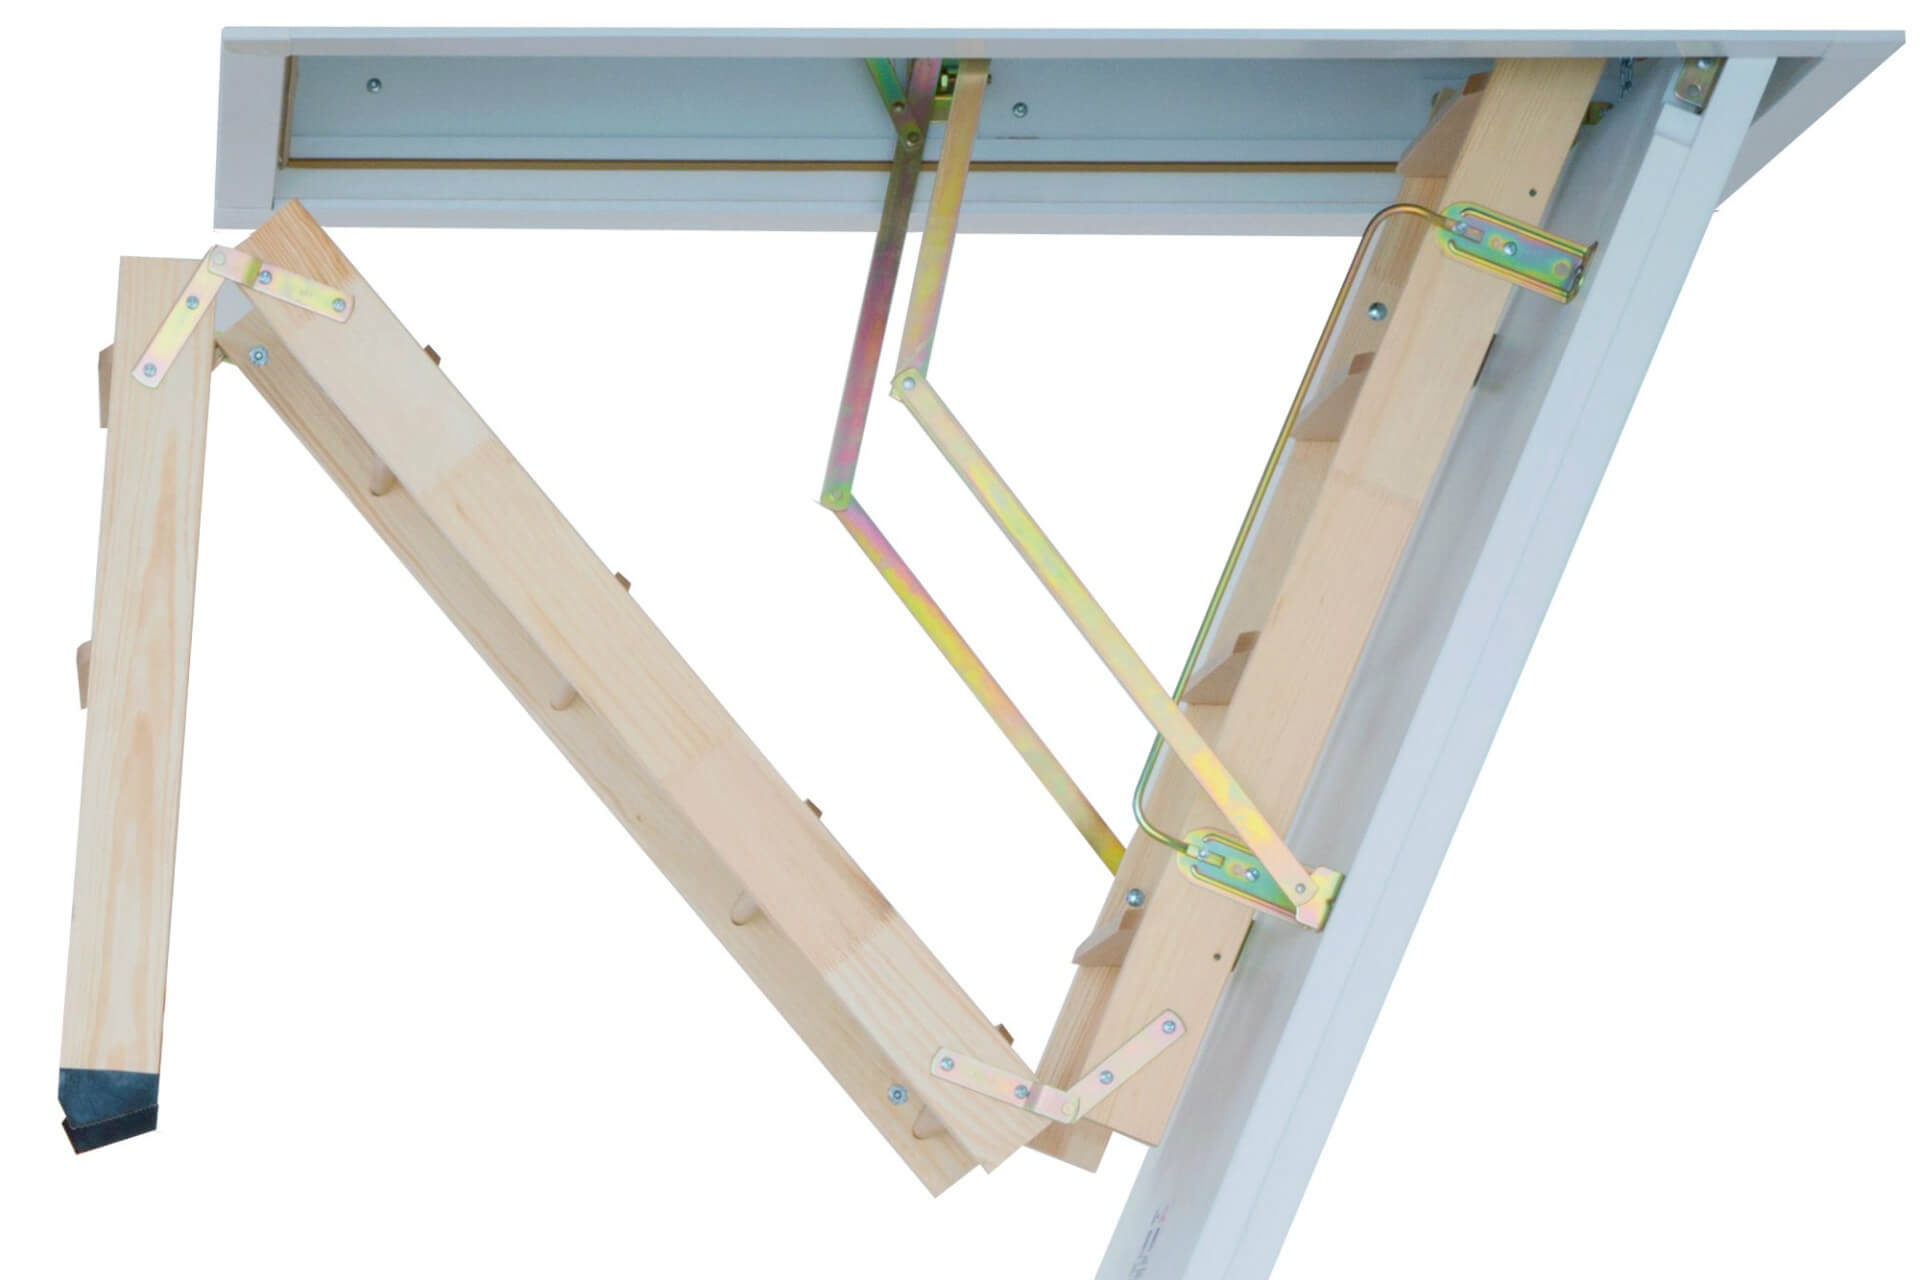 Wooden loft ladder and insulated hatch. The Cadet 3 from Premier Loft Ladders